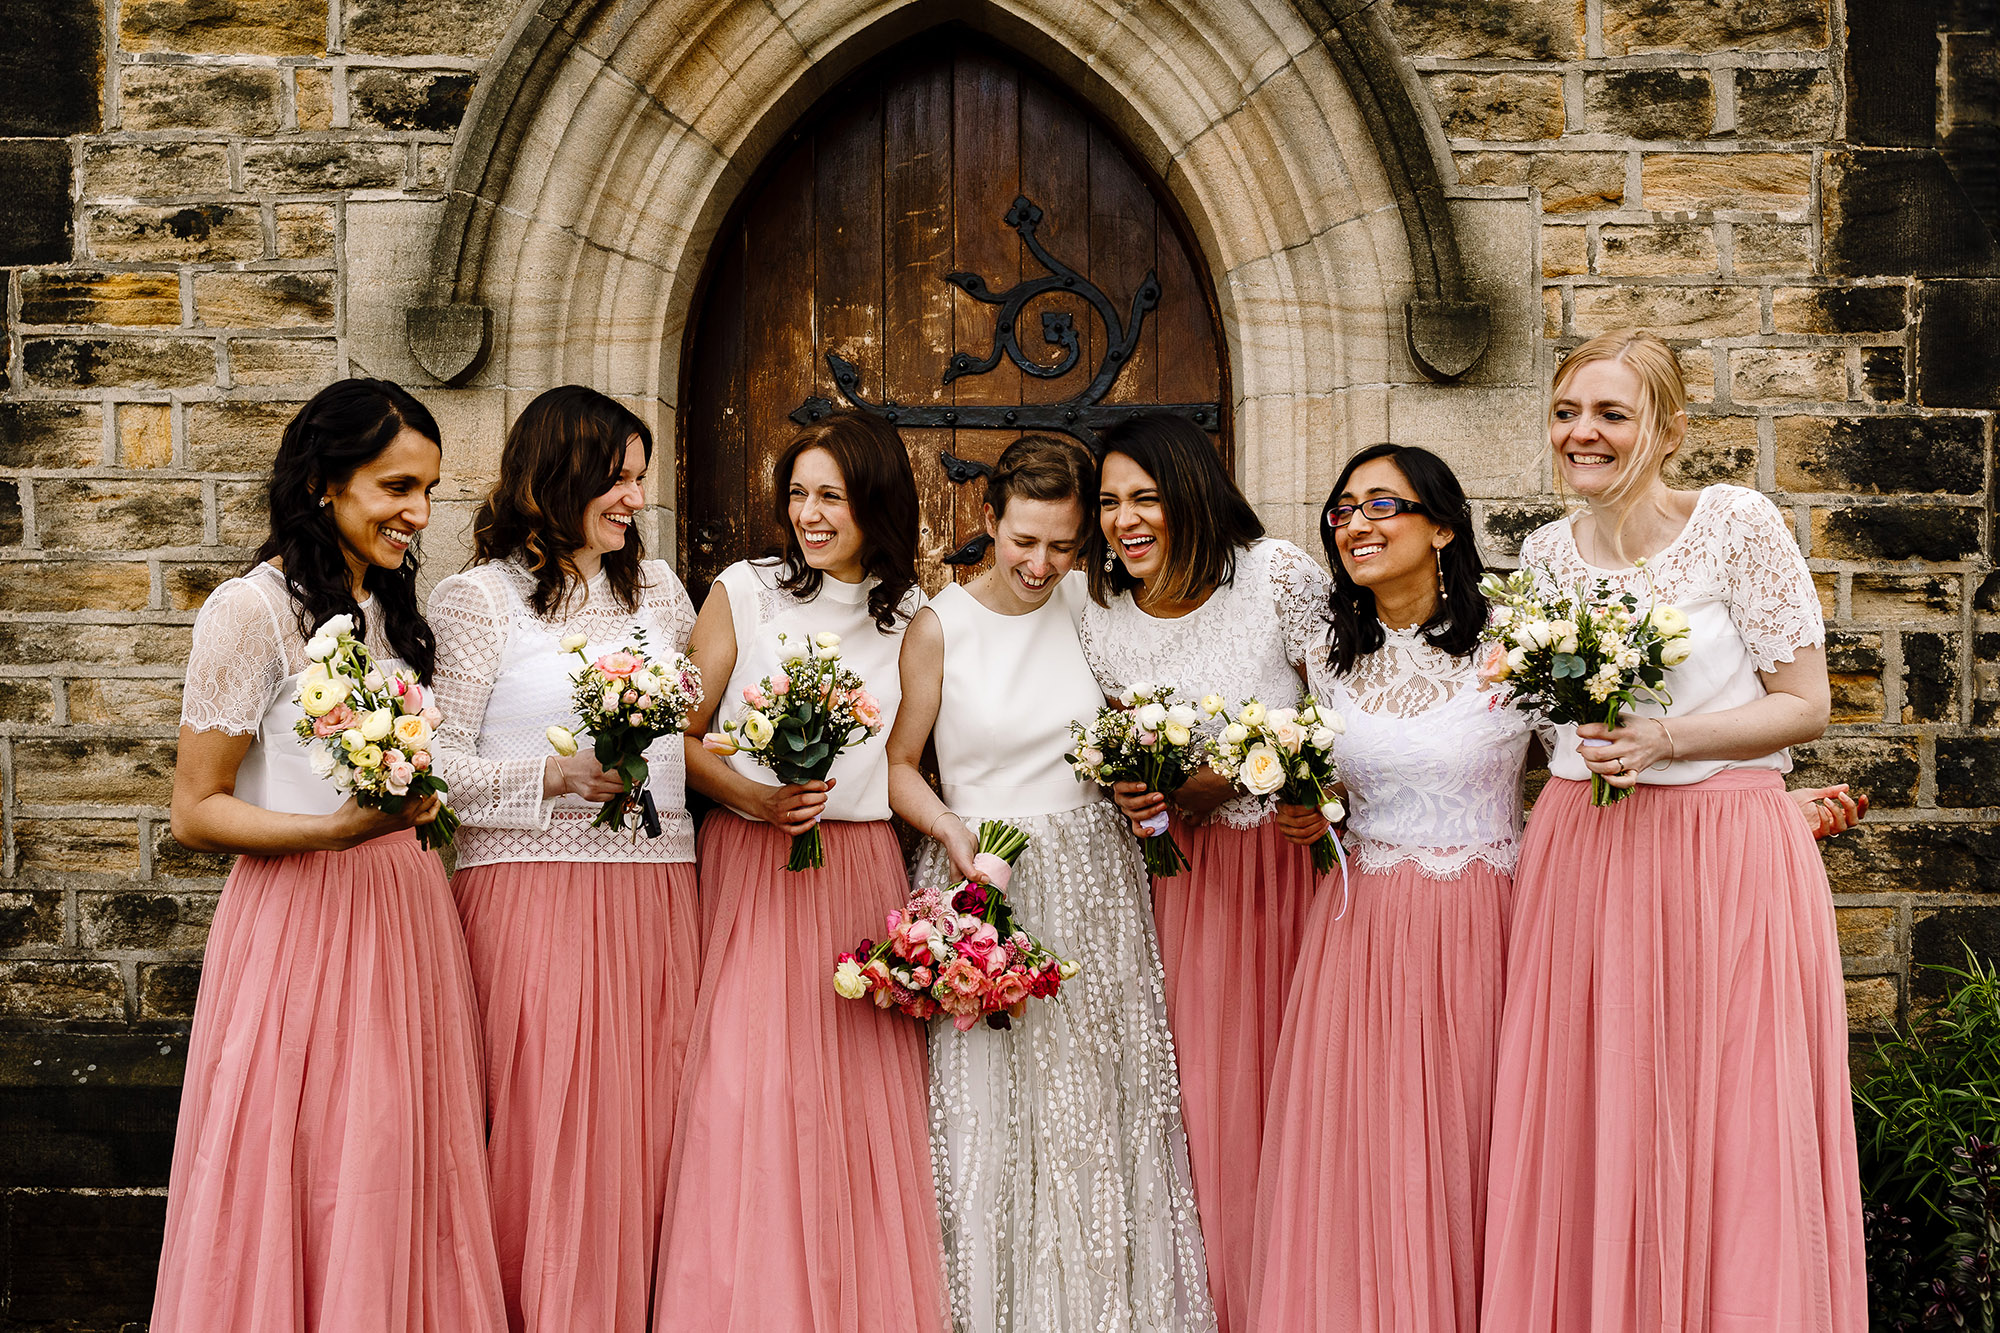 A bride and er six bridesmaids laughing